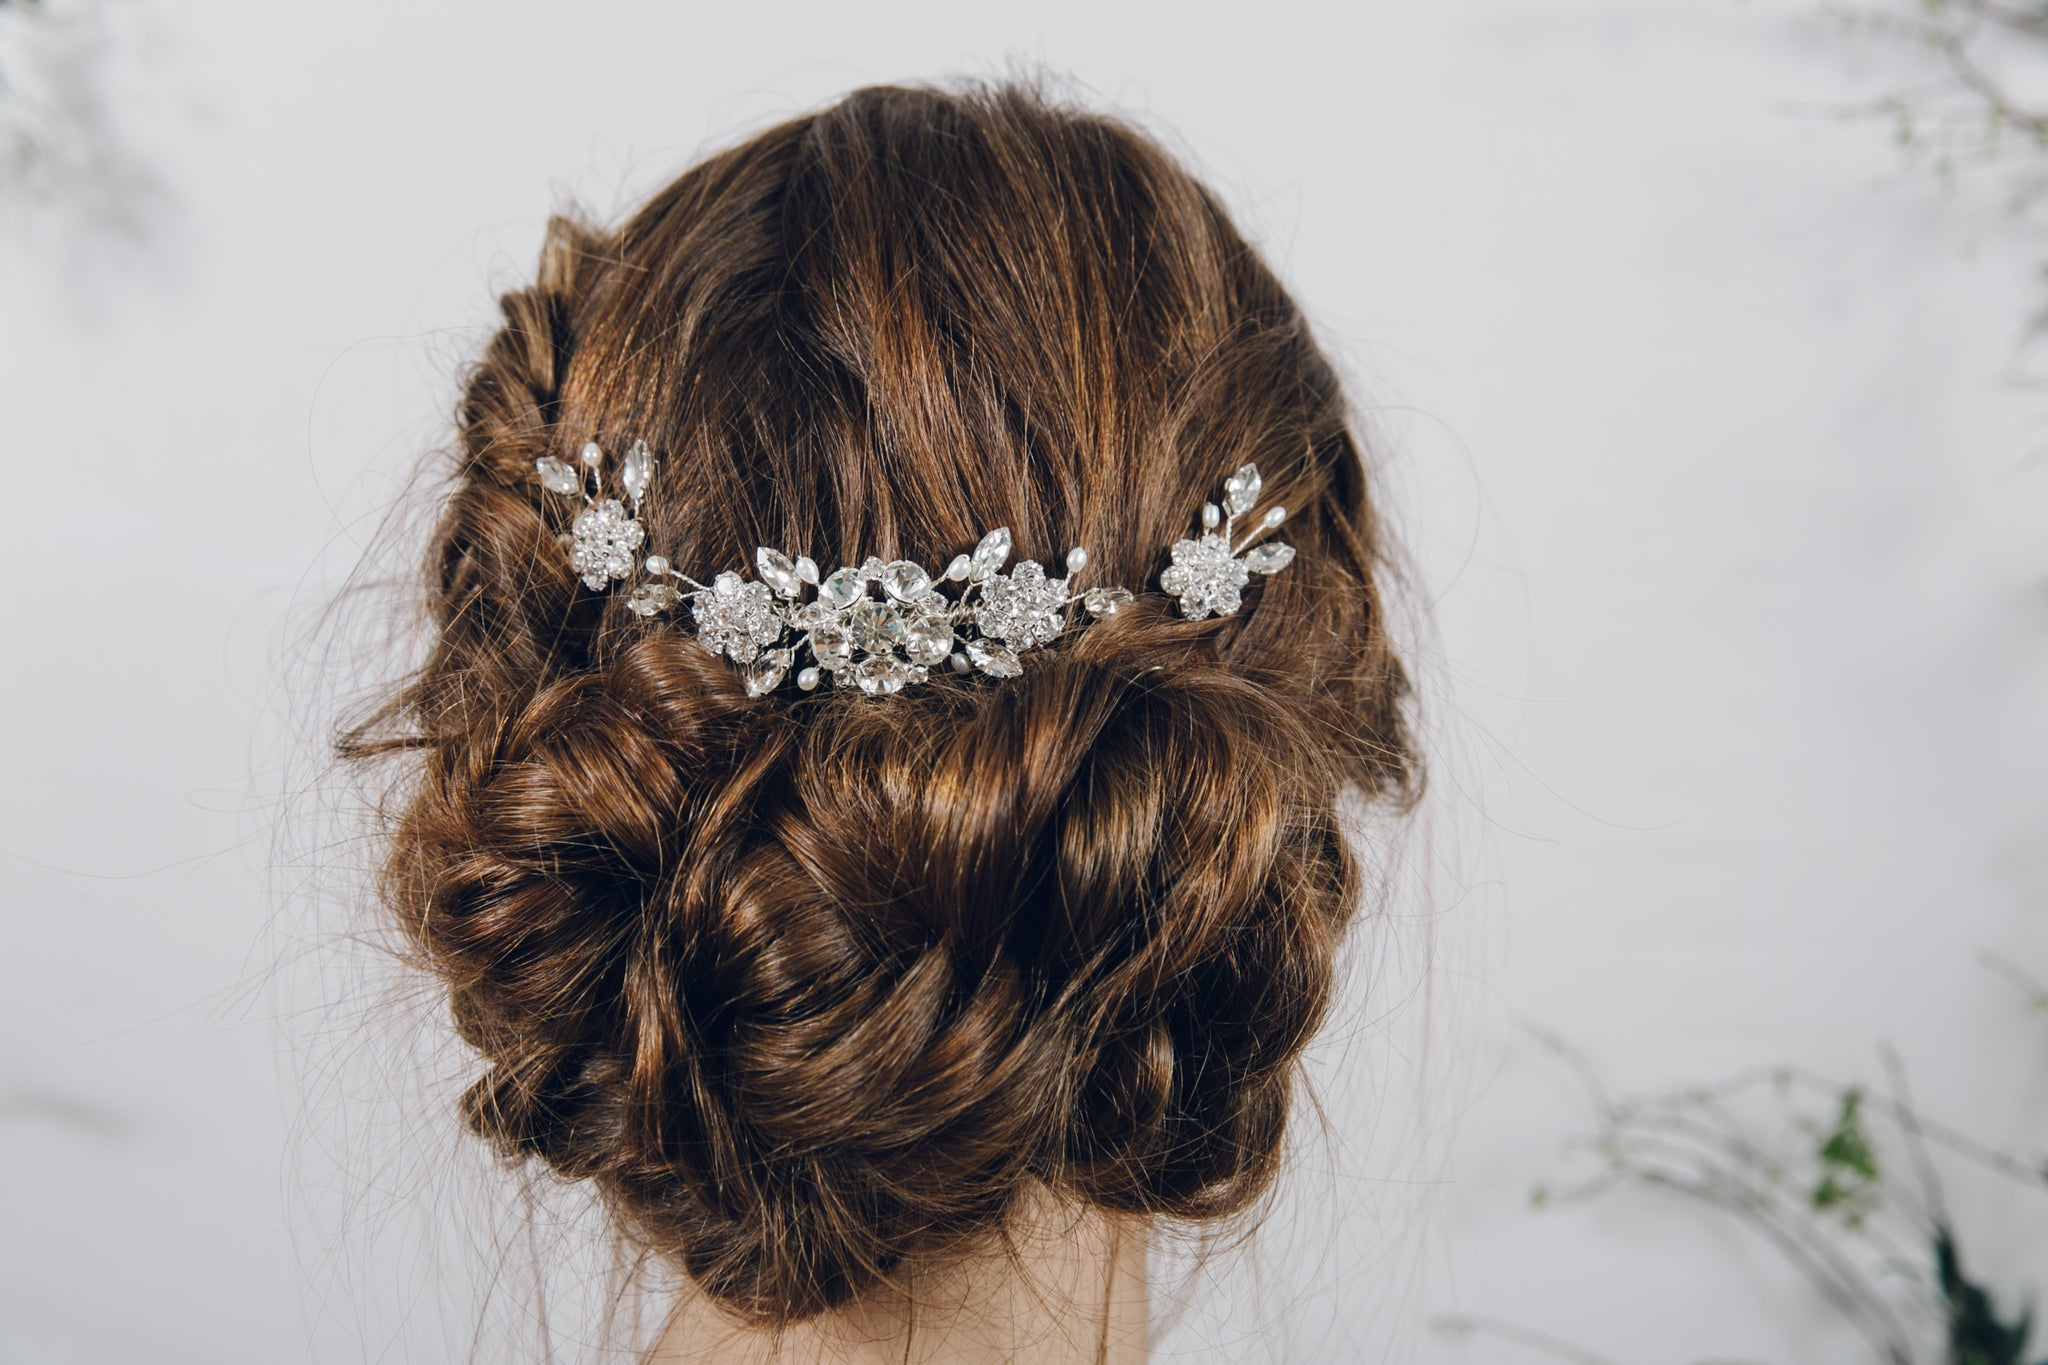 Two Saffron flower wedding hairpins either side of the Lucia floral wedding hair comb